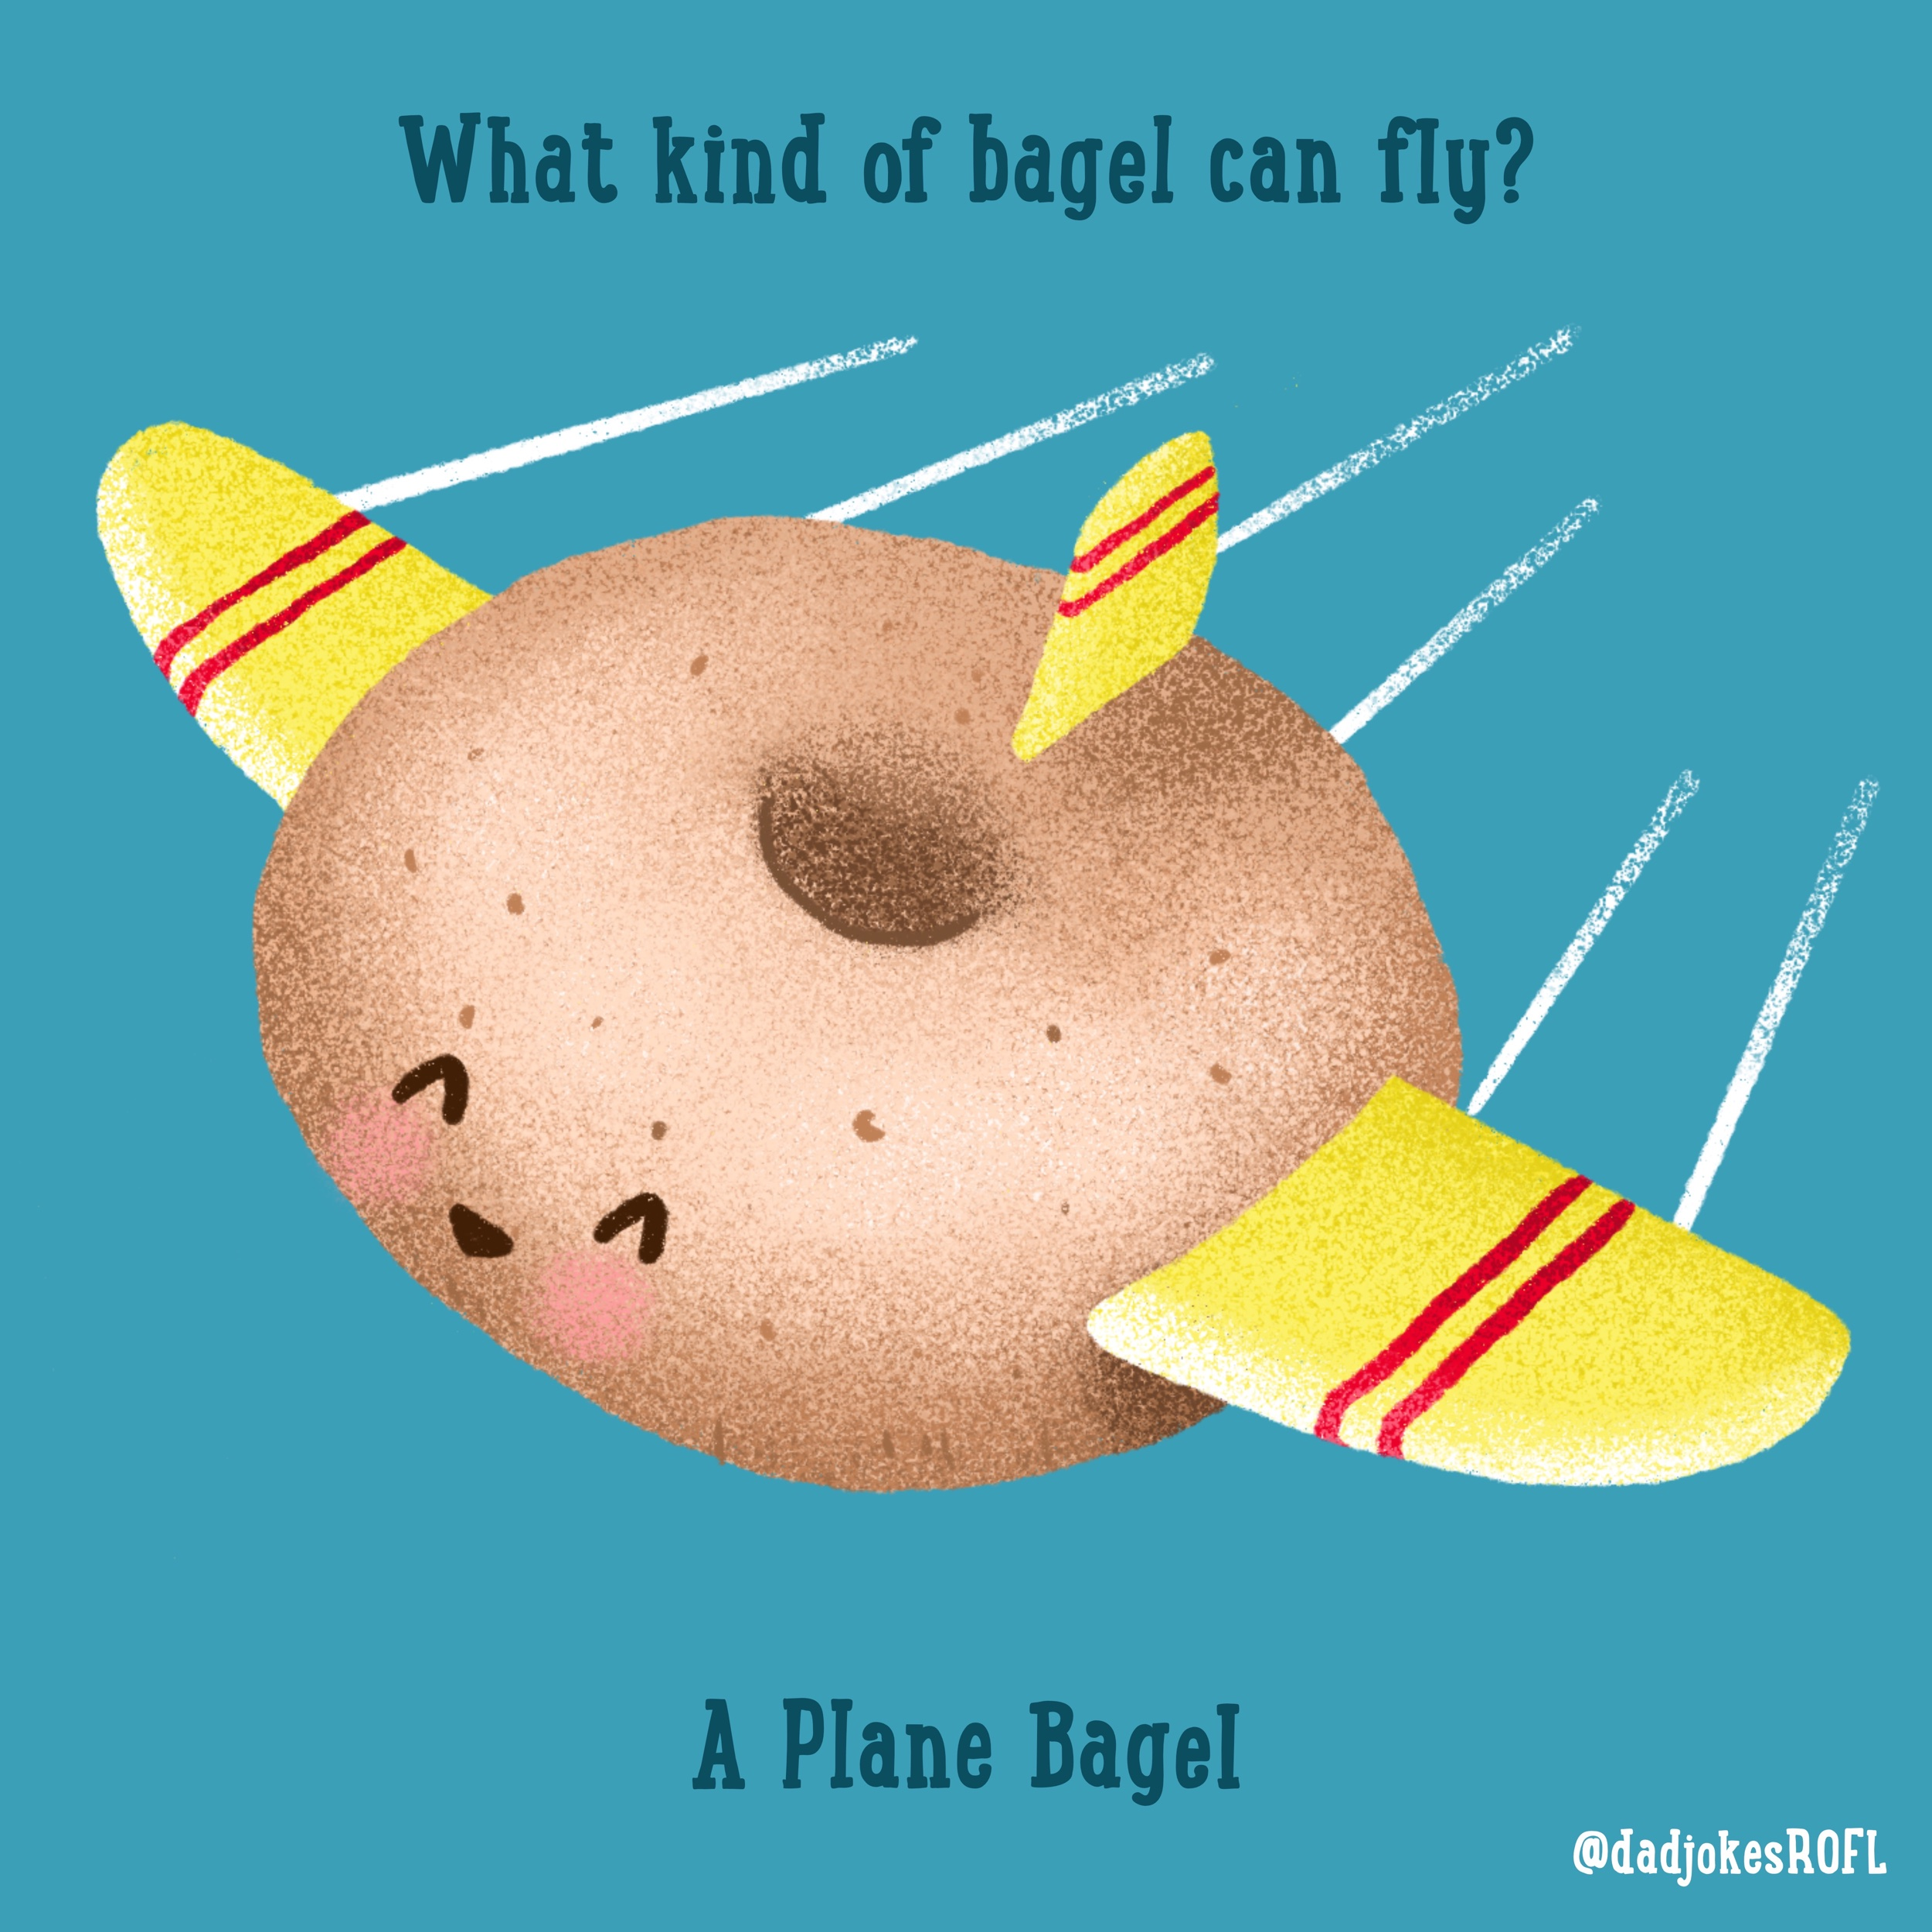 What kind of bagel can fly? A plane bagel